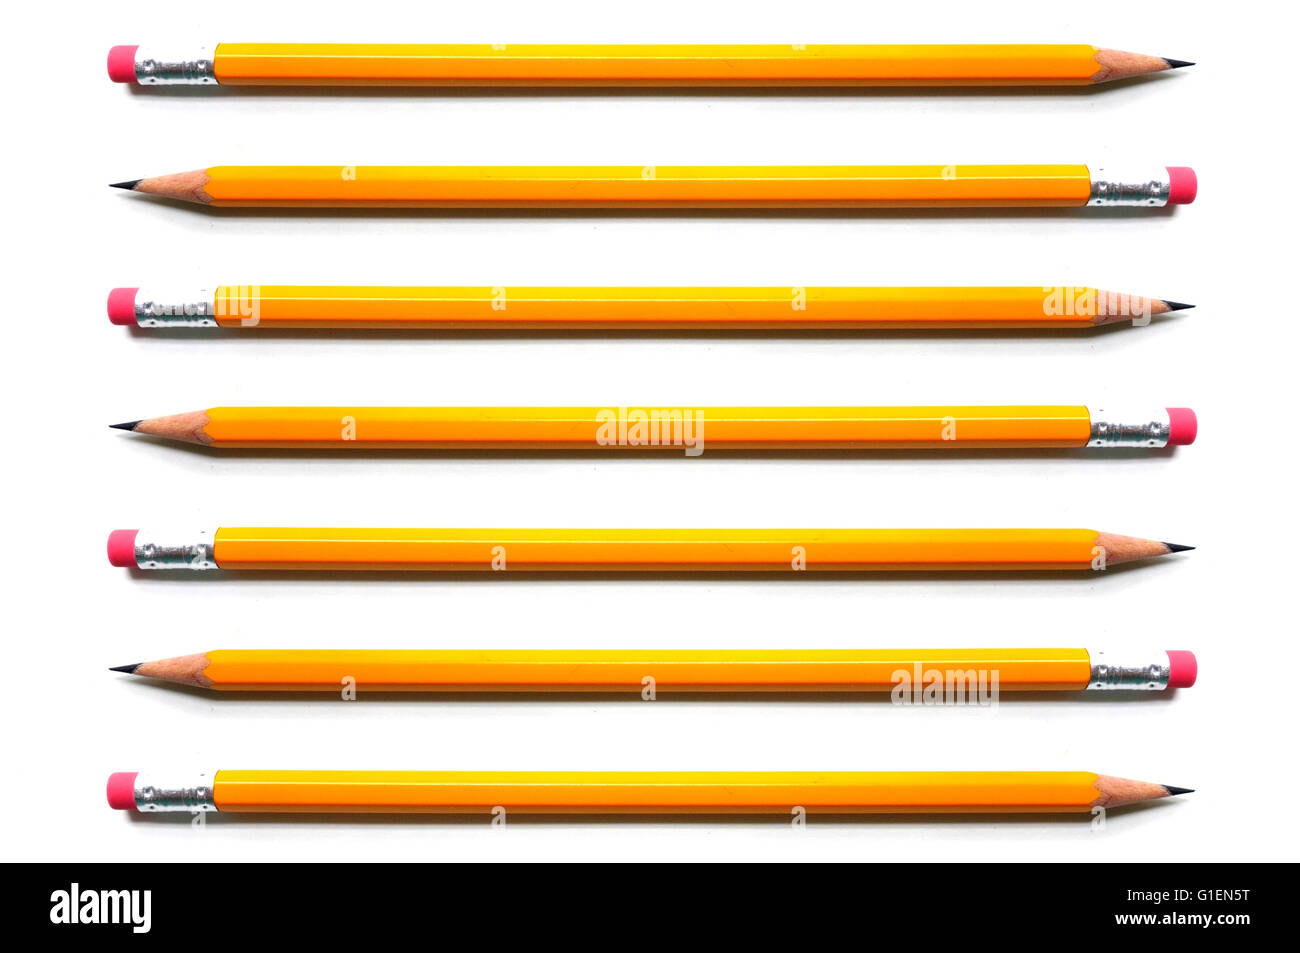 A line of yellow pencils photographed against a white background. - Stock Image